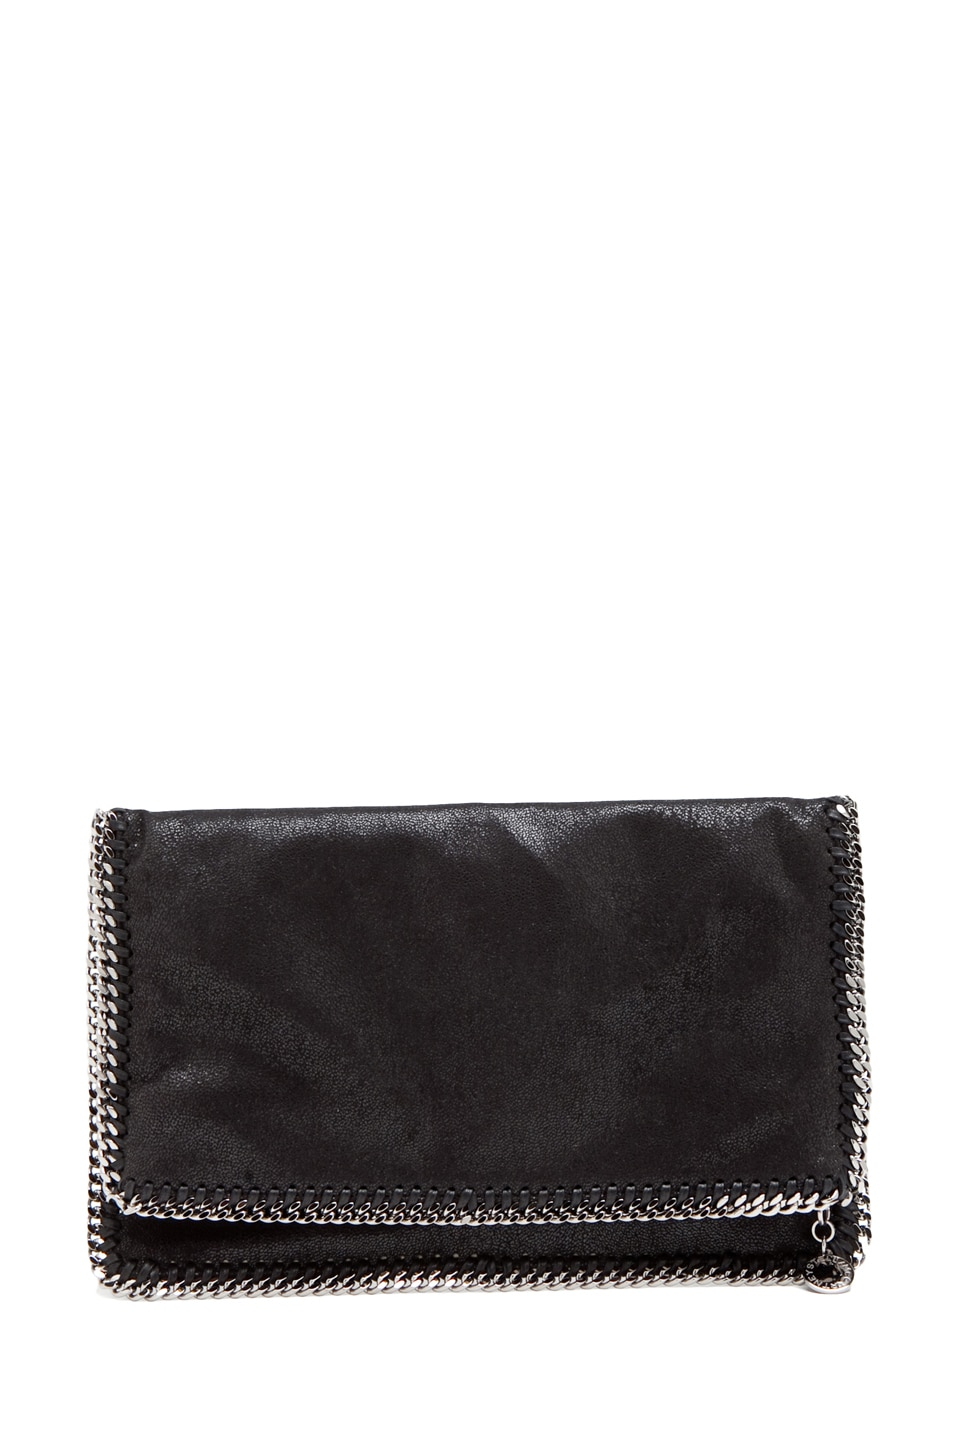 Image 1 of Stella McCartney Shaggy Deer Falabella Fold Over Clutch in Black